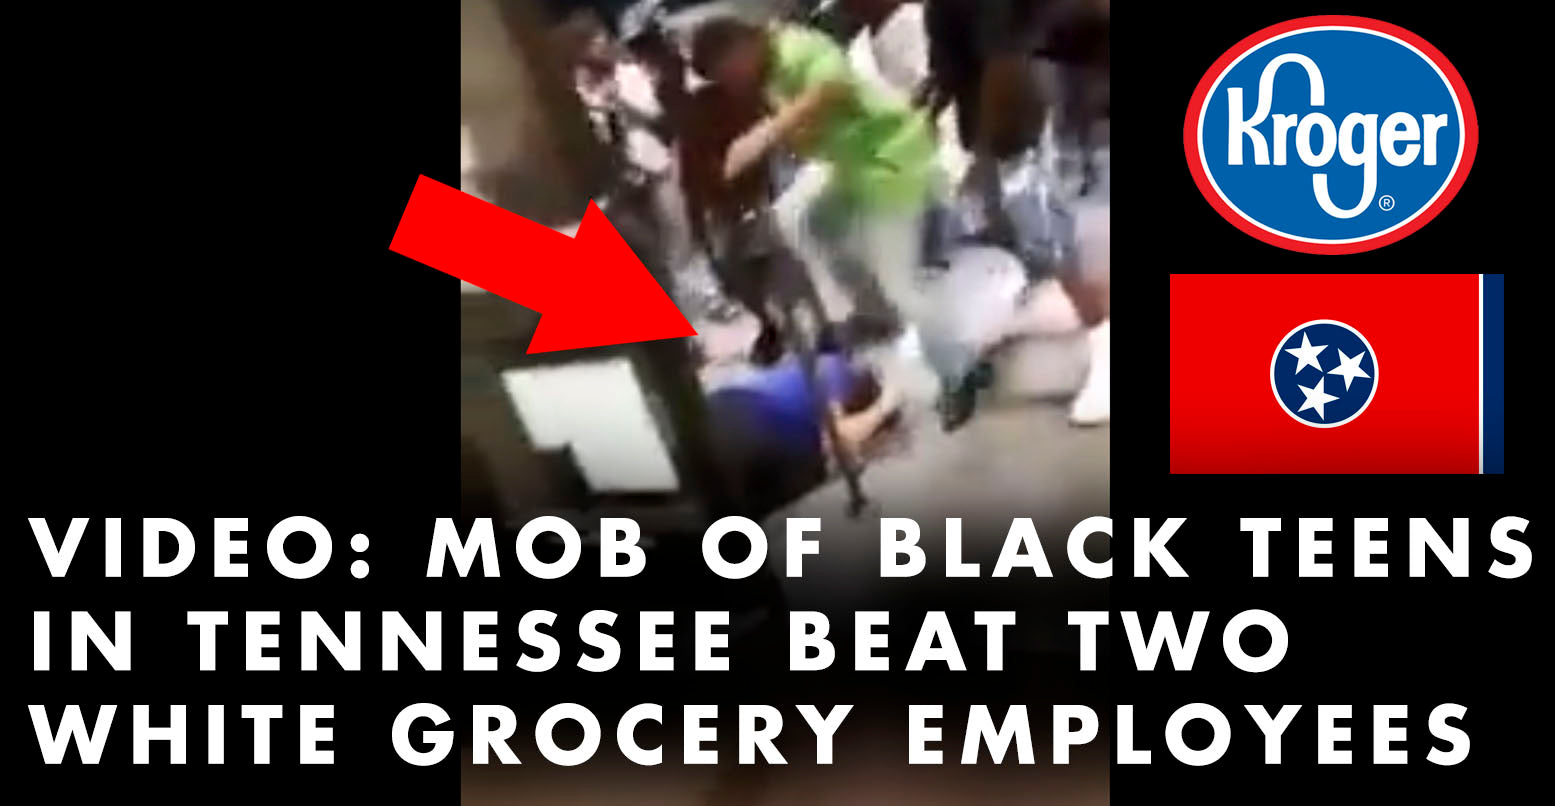 VIDEO: Mob of Black Teens In Tennessee Beat Two White Grocery Employees